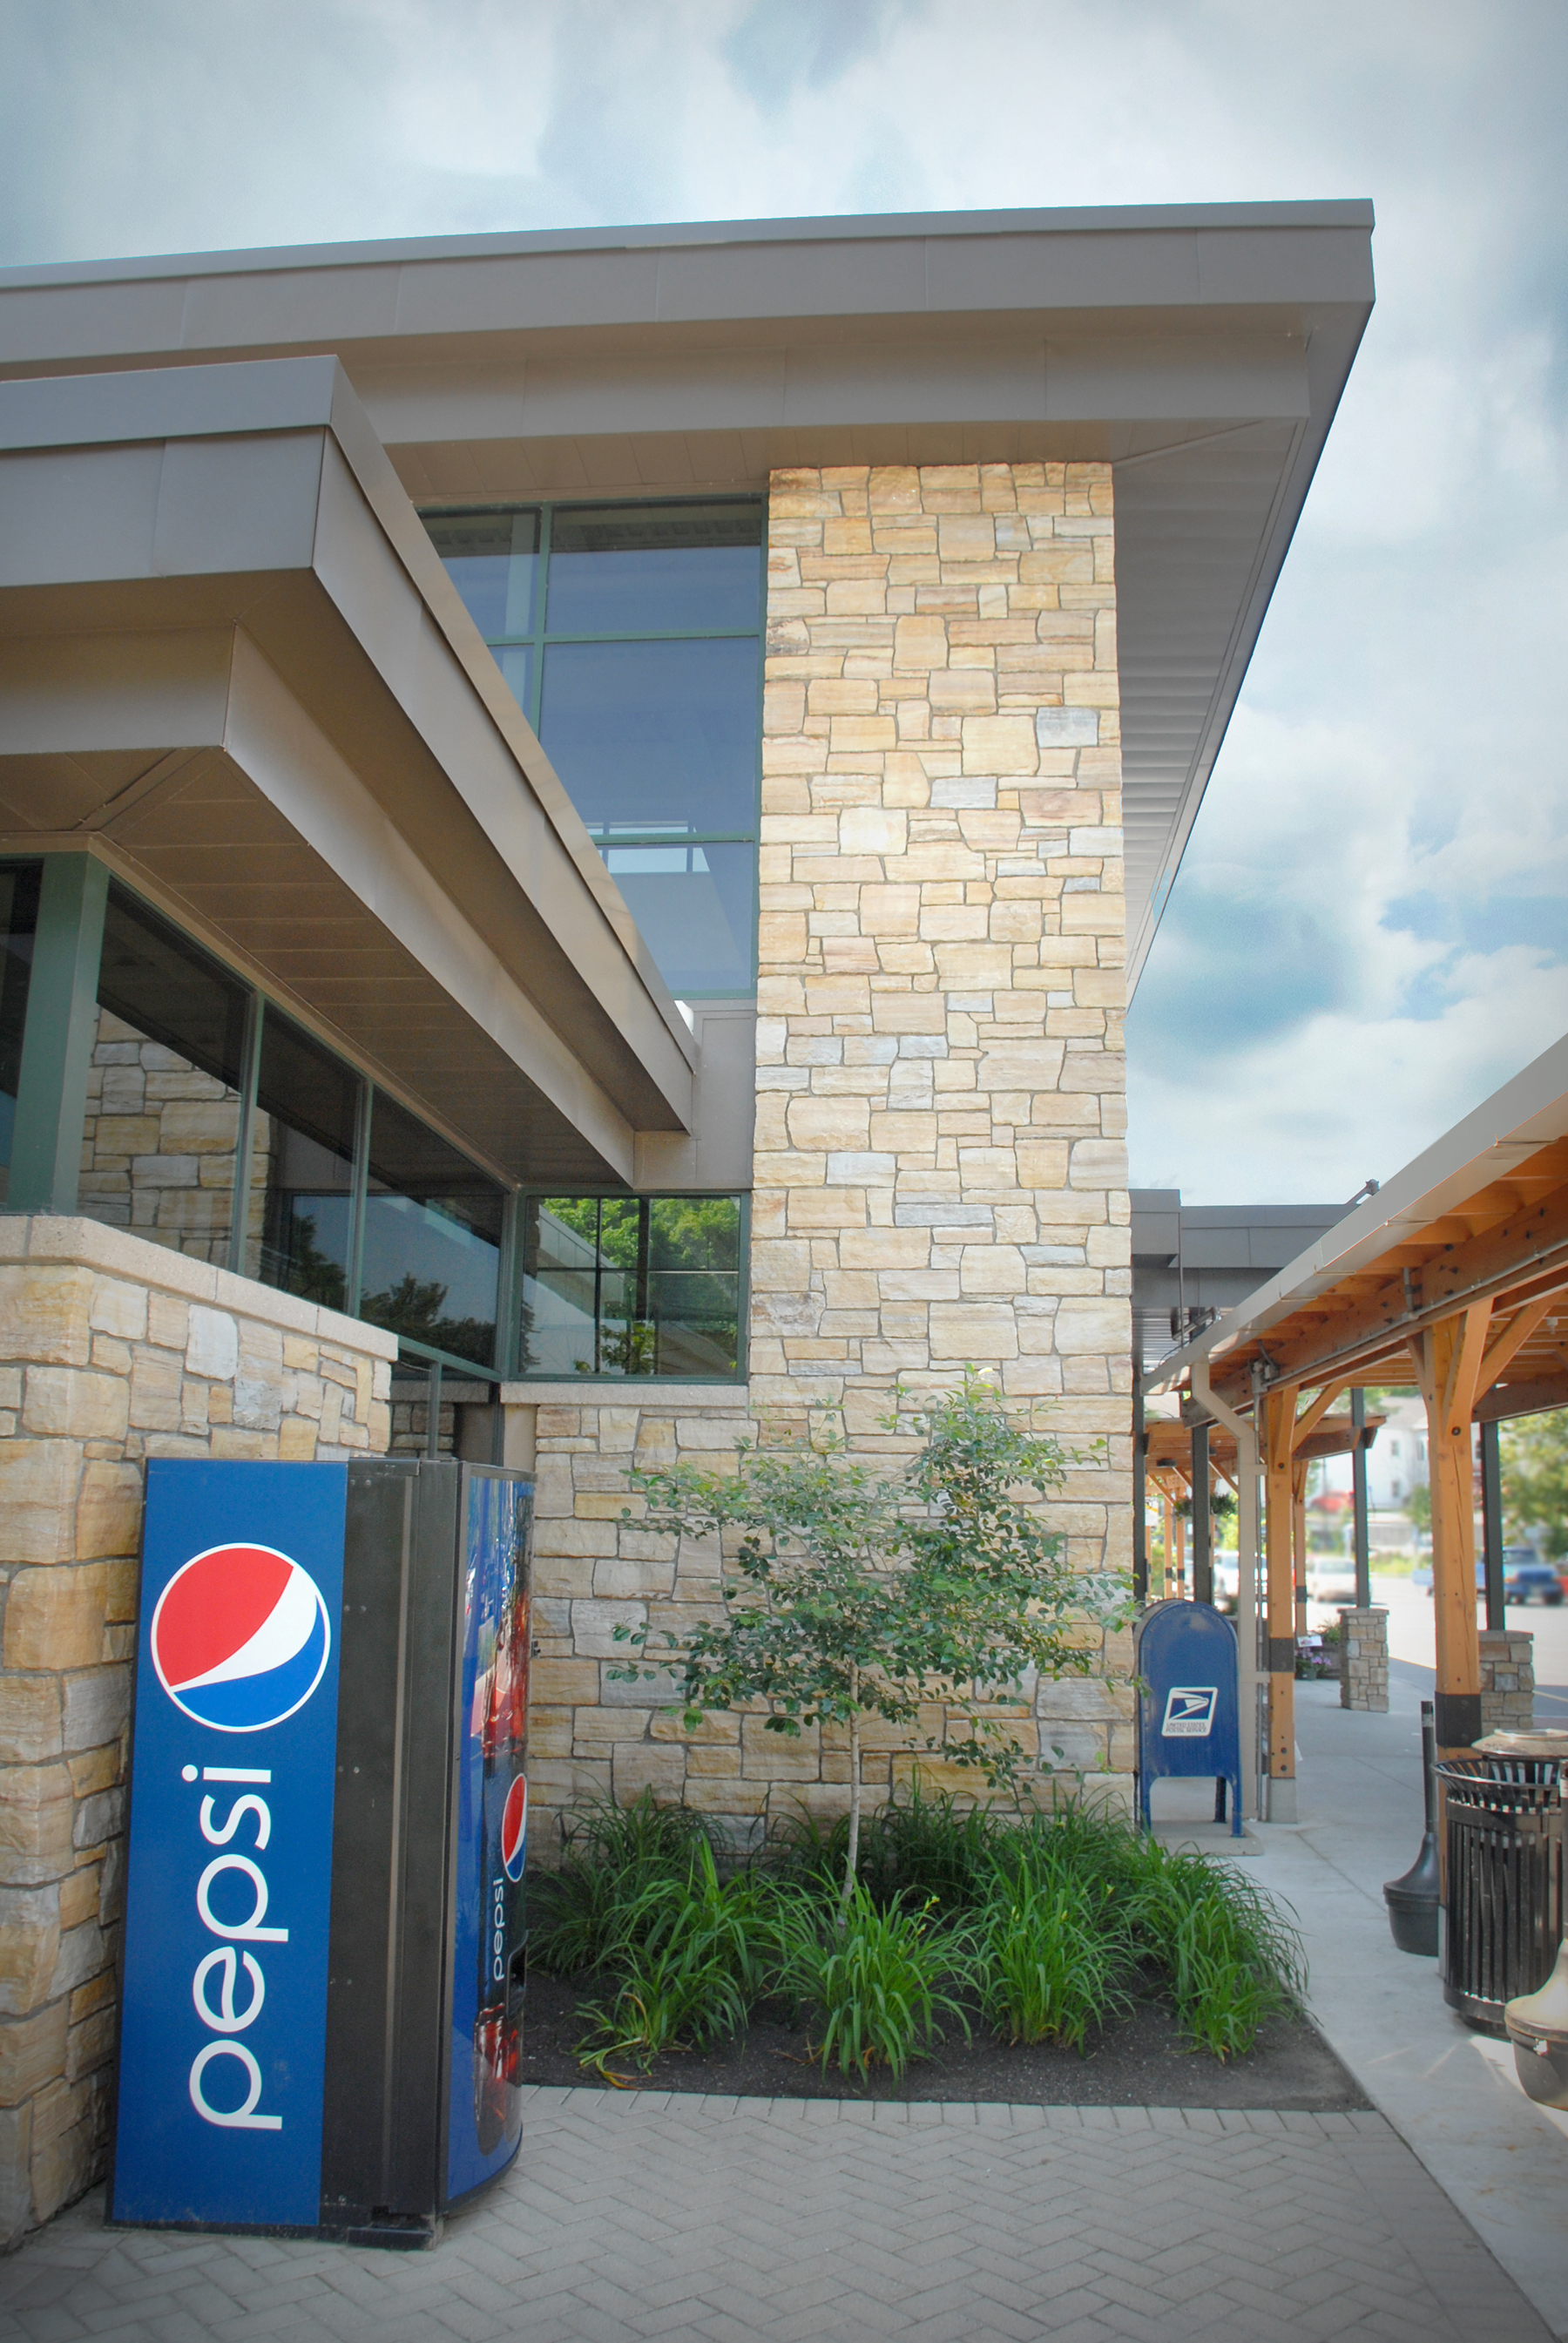 pepsi machine in front of stone building